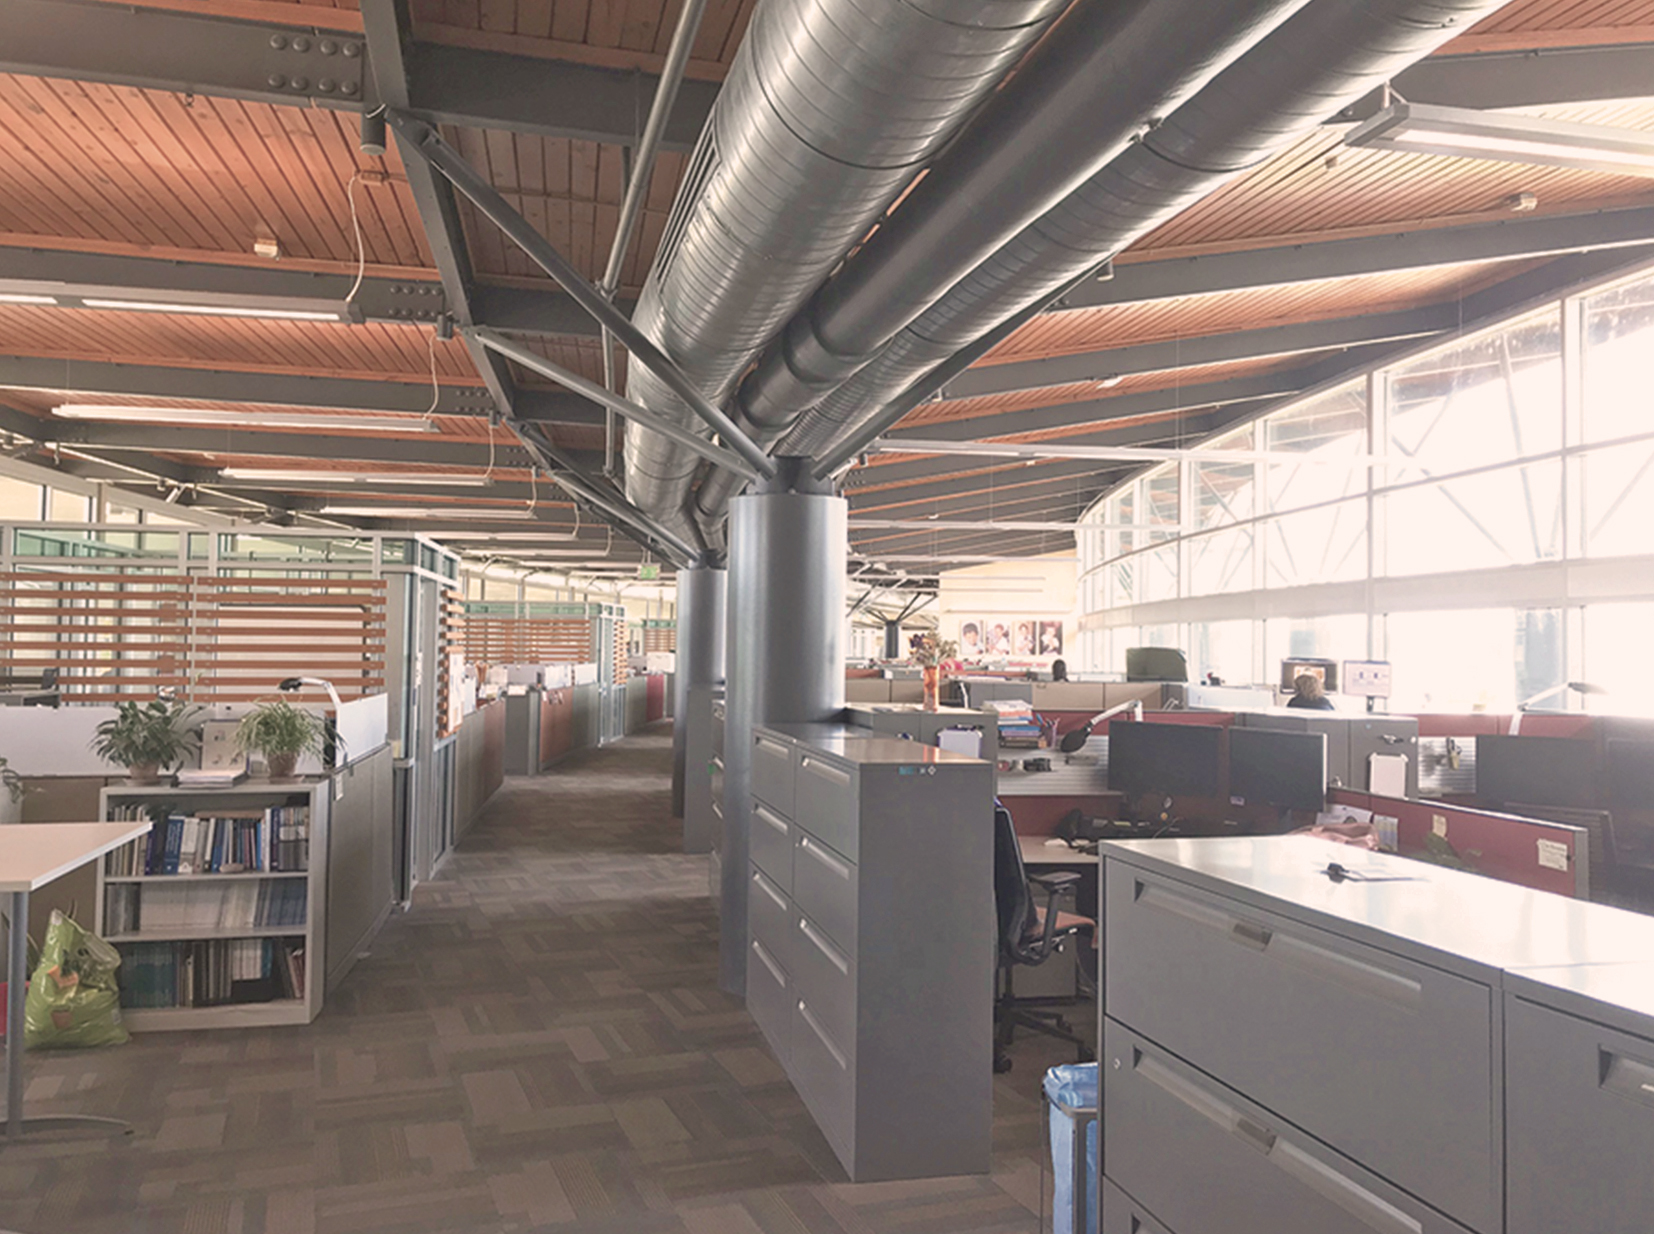 The works areas at Heifer Headquarters follow the curve of the building, which has exposed ceilings. This section has windows on the right with several rows of cubicles and filing cabinets that line the walkway.